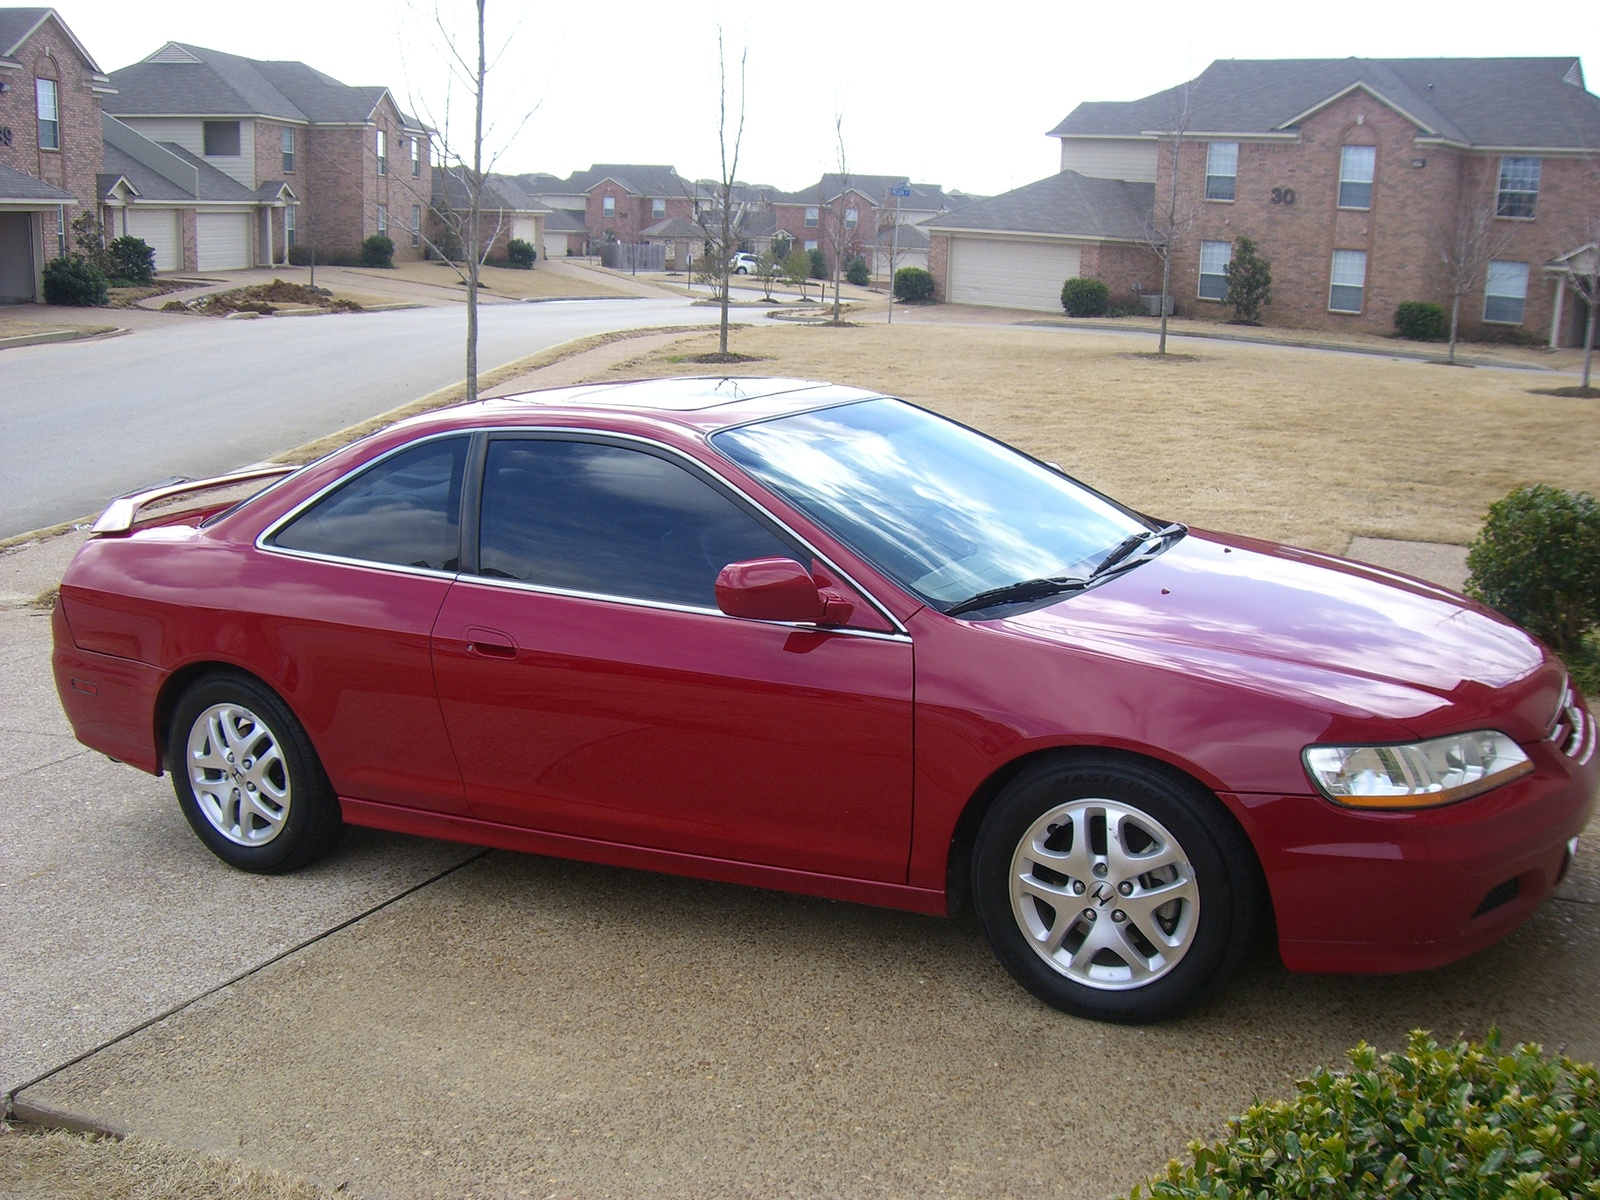 Picture of 2001 Honda Accord LX V6 Coupe, exterior